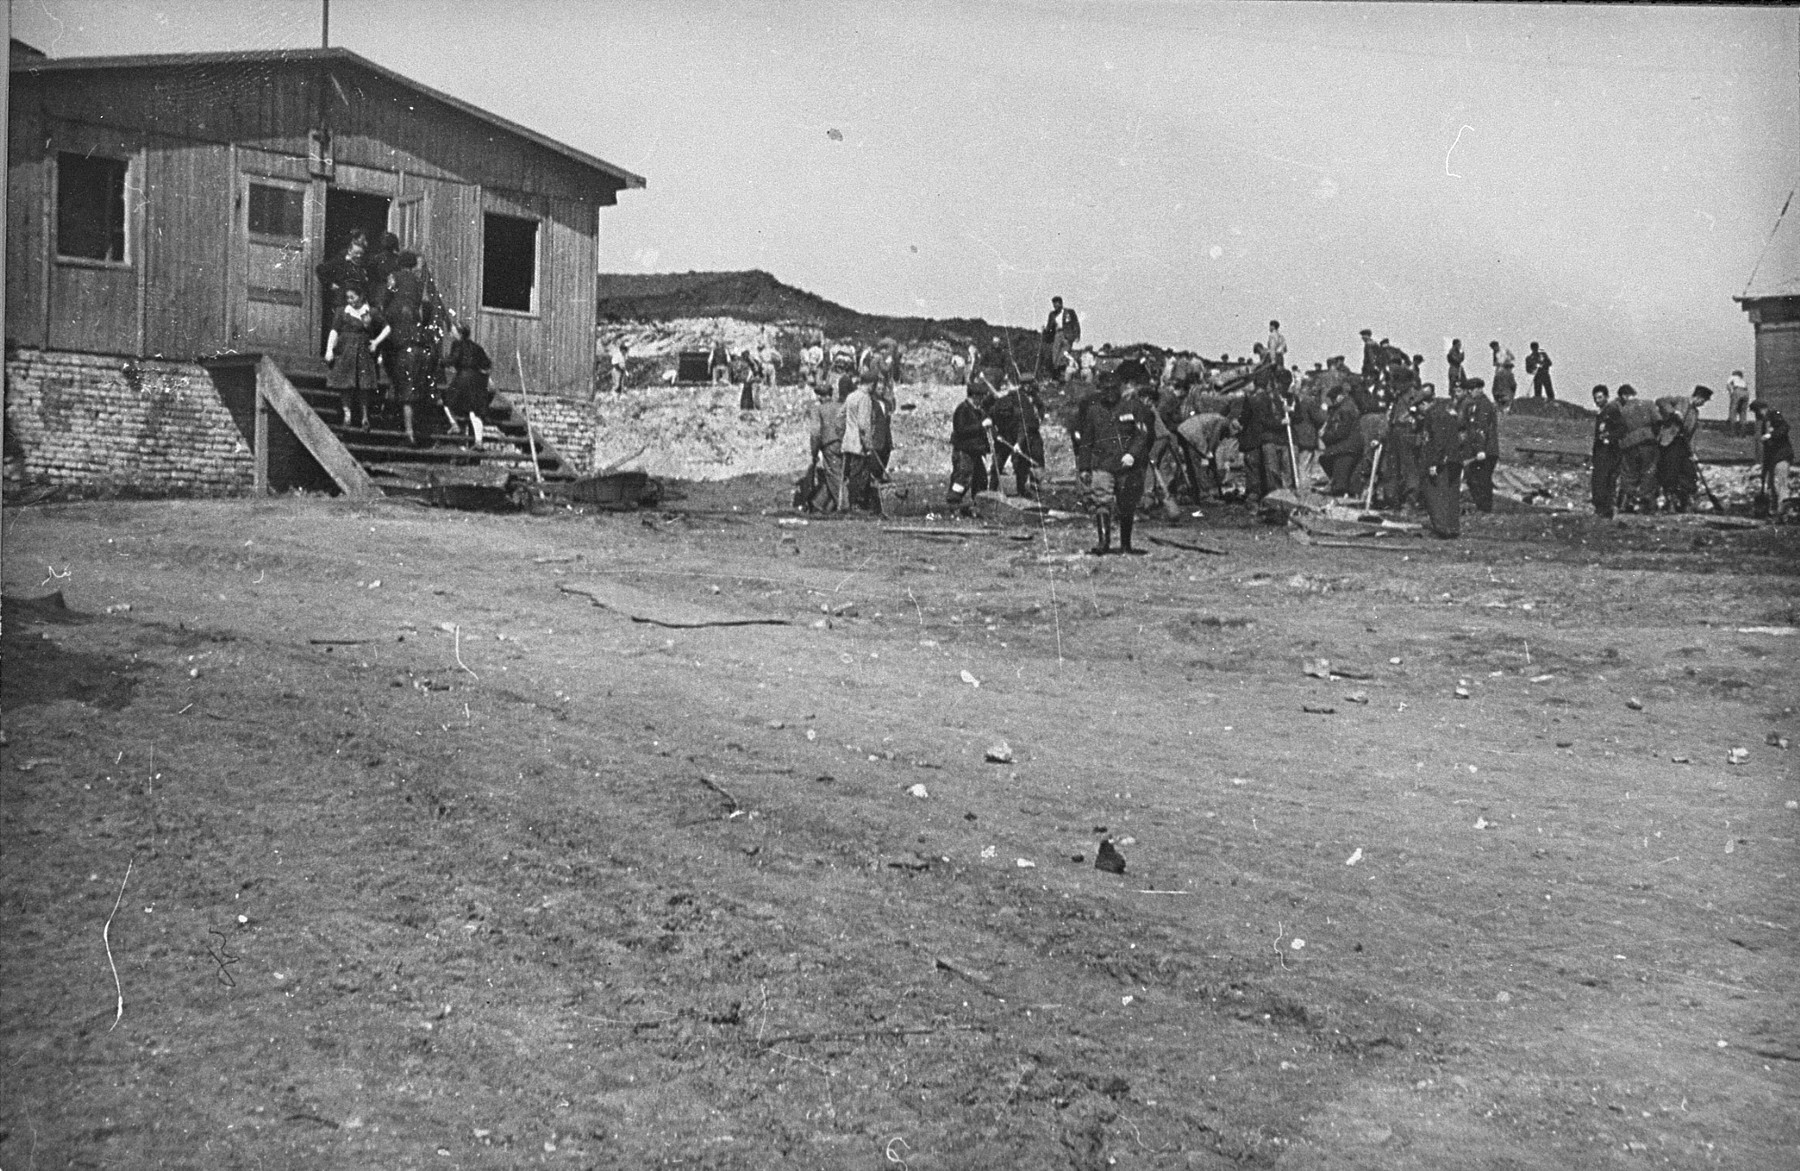 Jewish prisoners at forced labor in Plaszow.  The building on the left is probably the Madritch factory office, while the man walking in the foreground is likely a kapo, or civilian overseer.